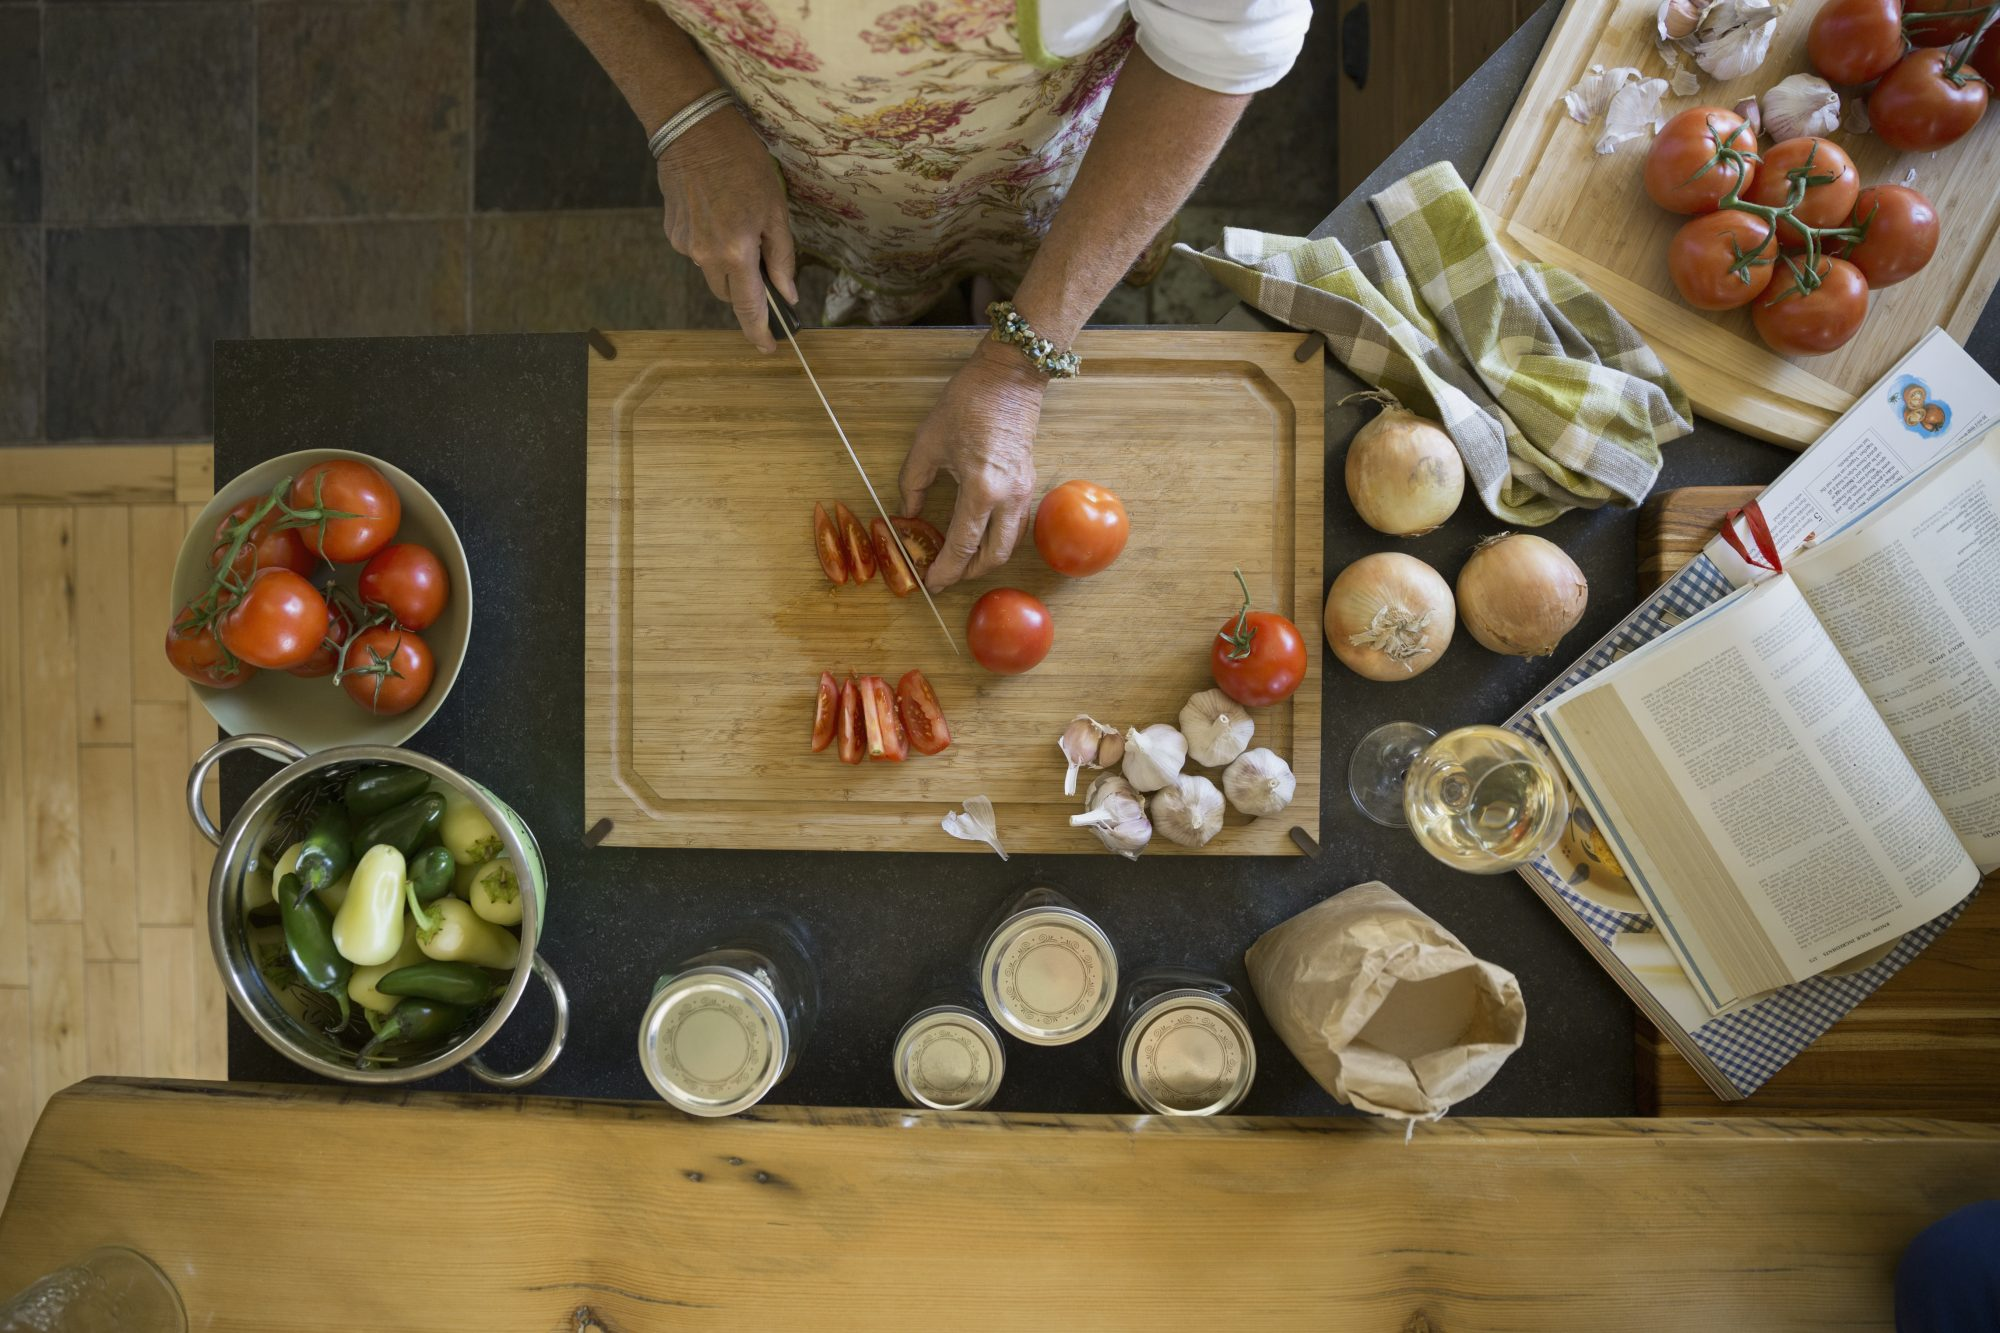 getty-cooking-image